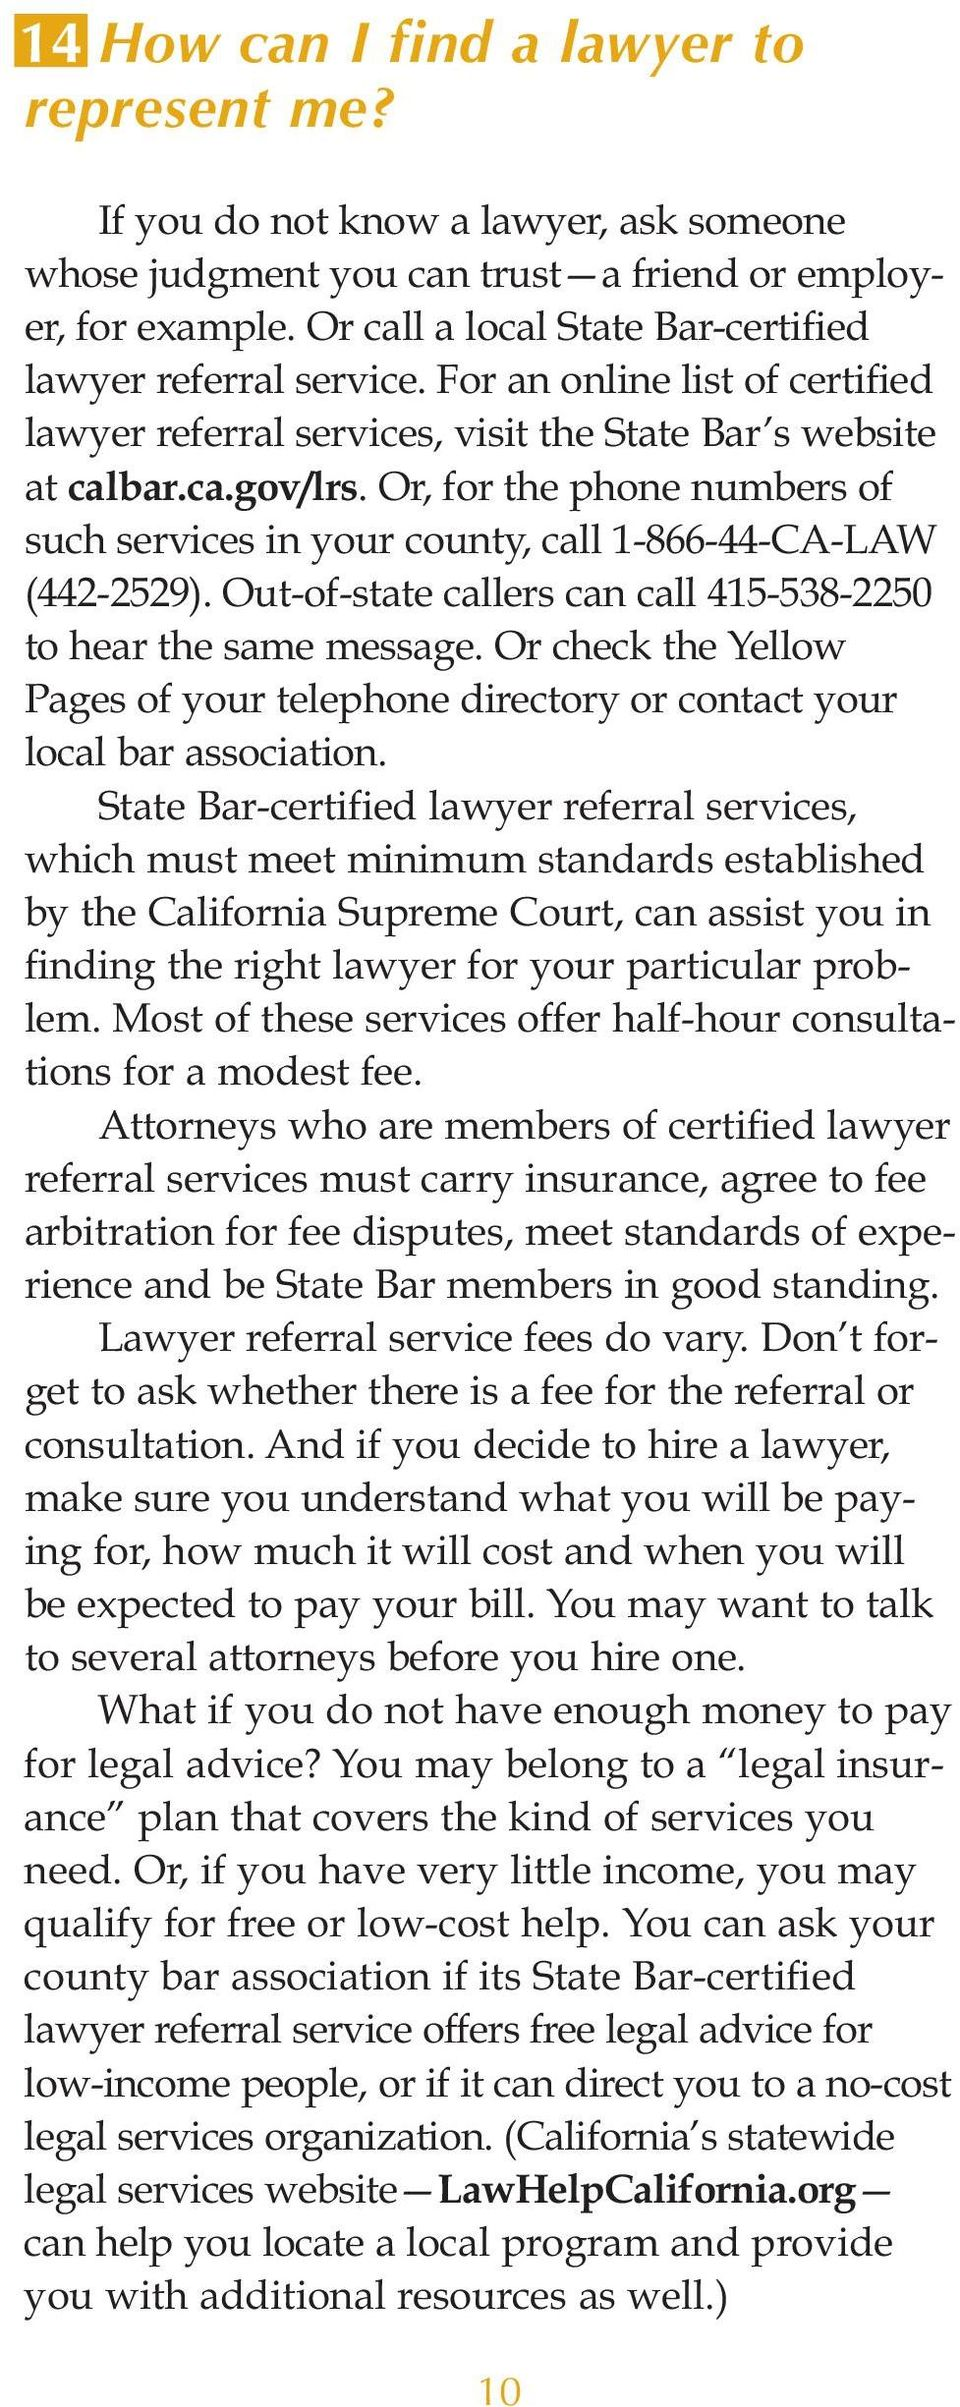 Or, for the phone numbers of such services in your county, call 1-866-44-CA-LAW (442-2529). Out-of-state callers can call 415-538-2250 to hear the same message.